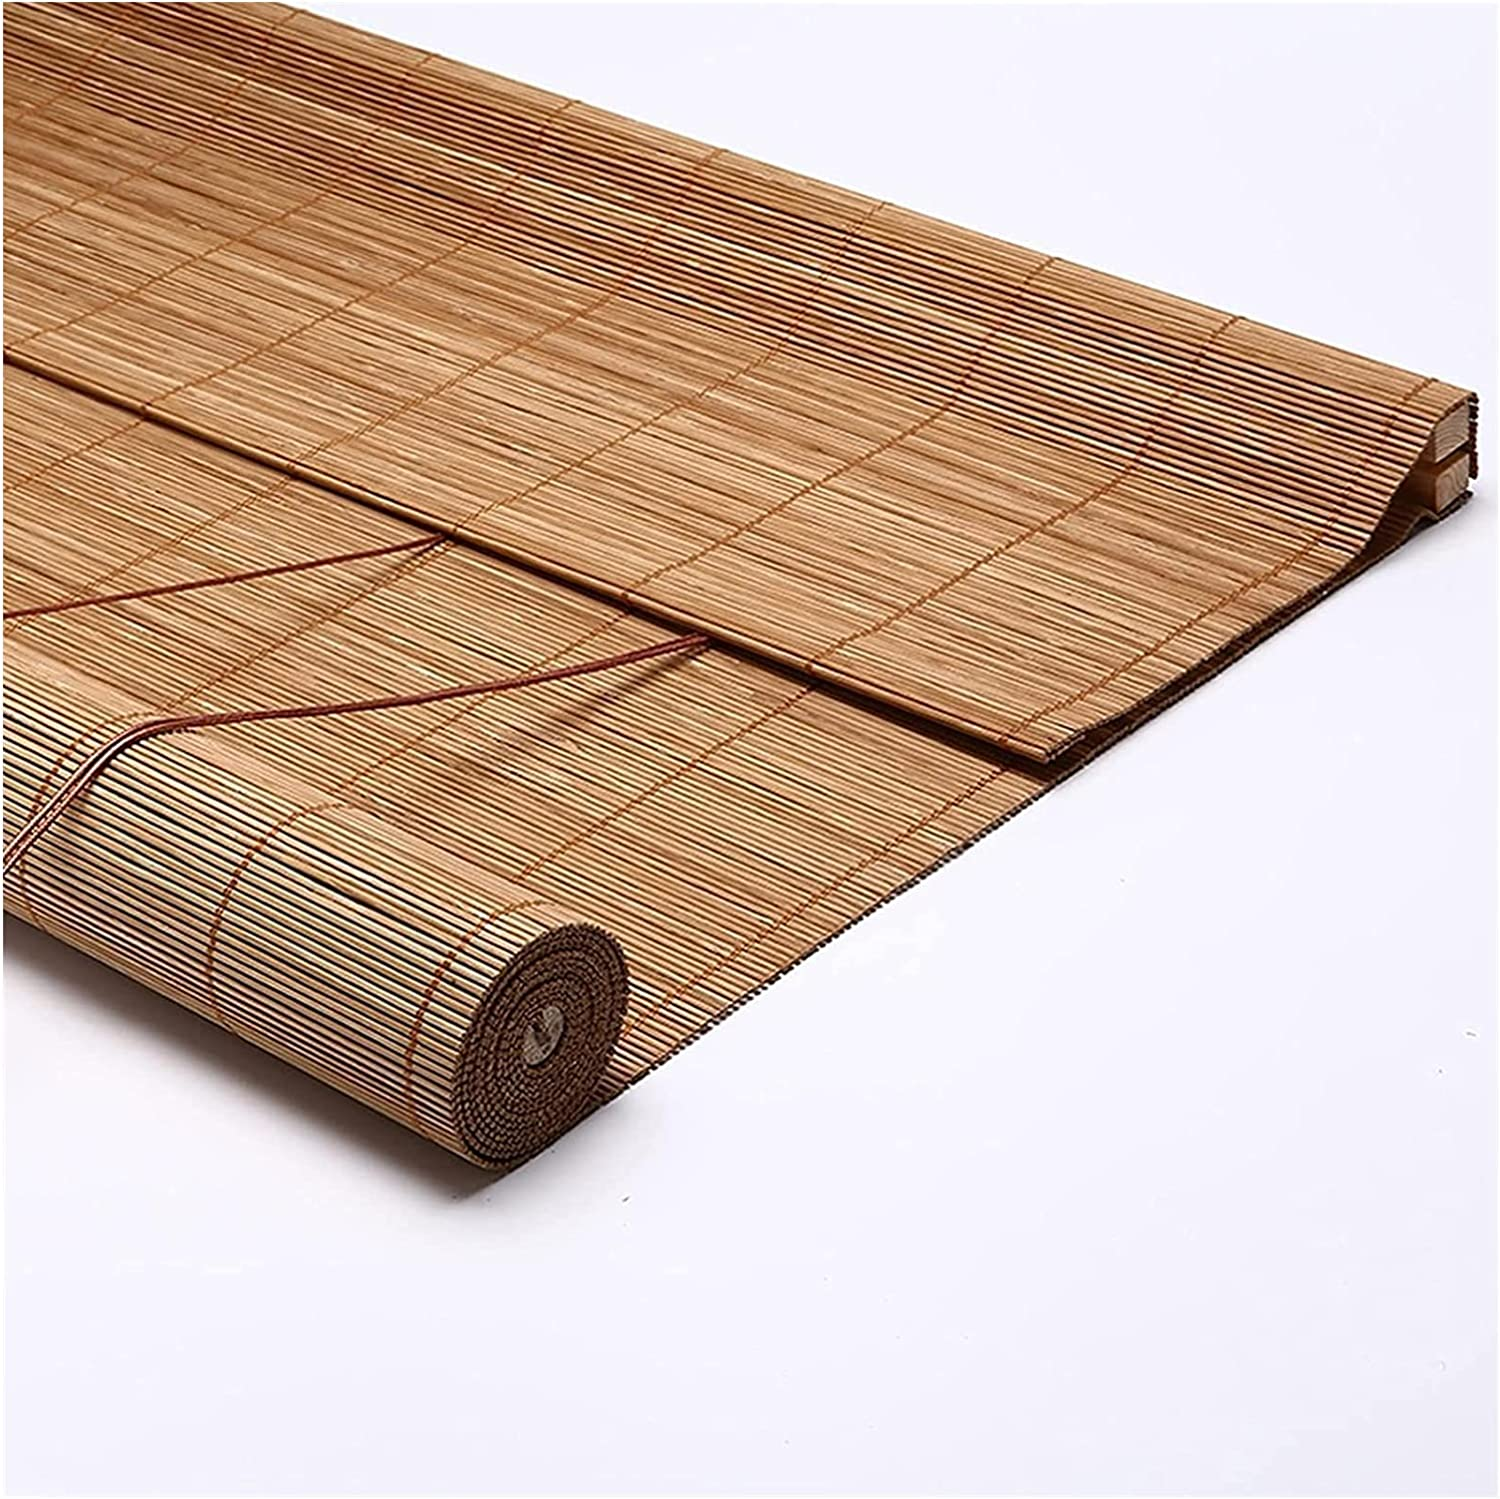 MTDWEITOO Bamboo Blinds for Windows Roll Up Blind Carbonization Quality inspection Seasonal Wrap Introduction